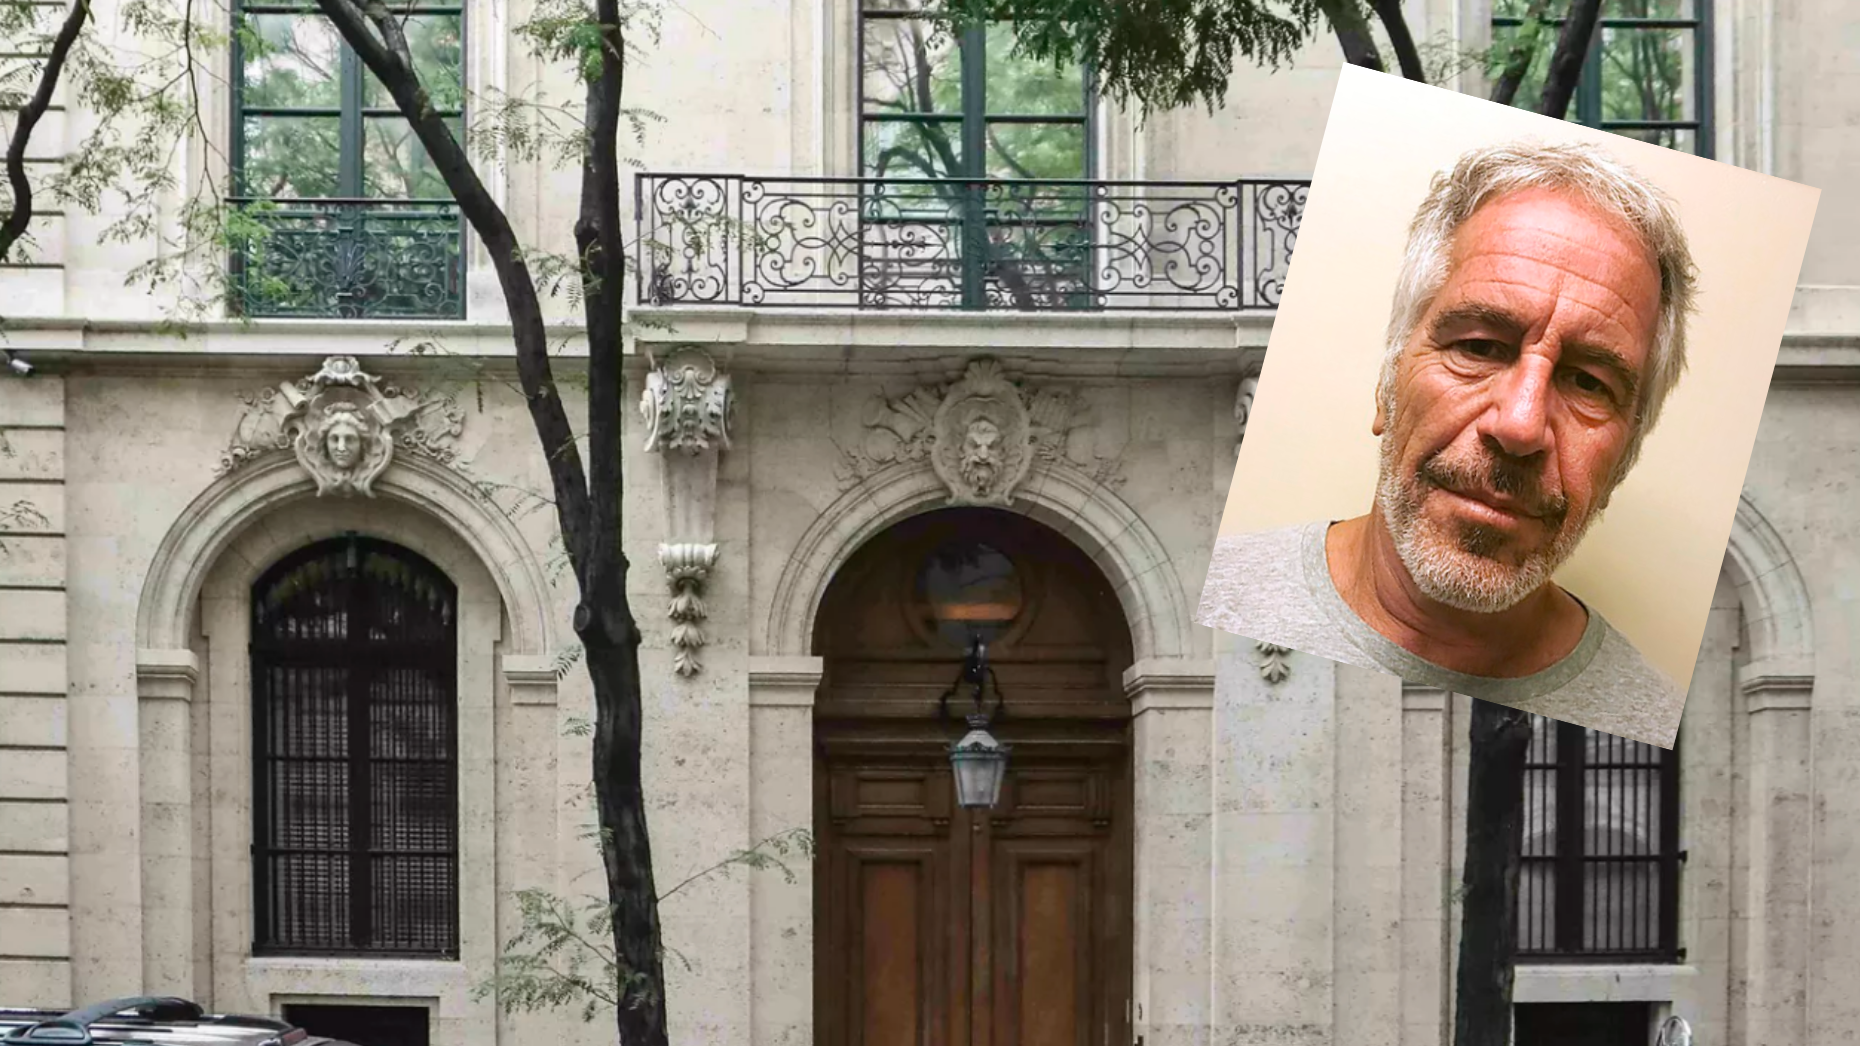 Preservationists want Jeffrey Epstein's New York mansion to be a museum